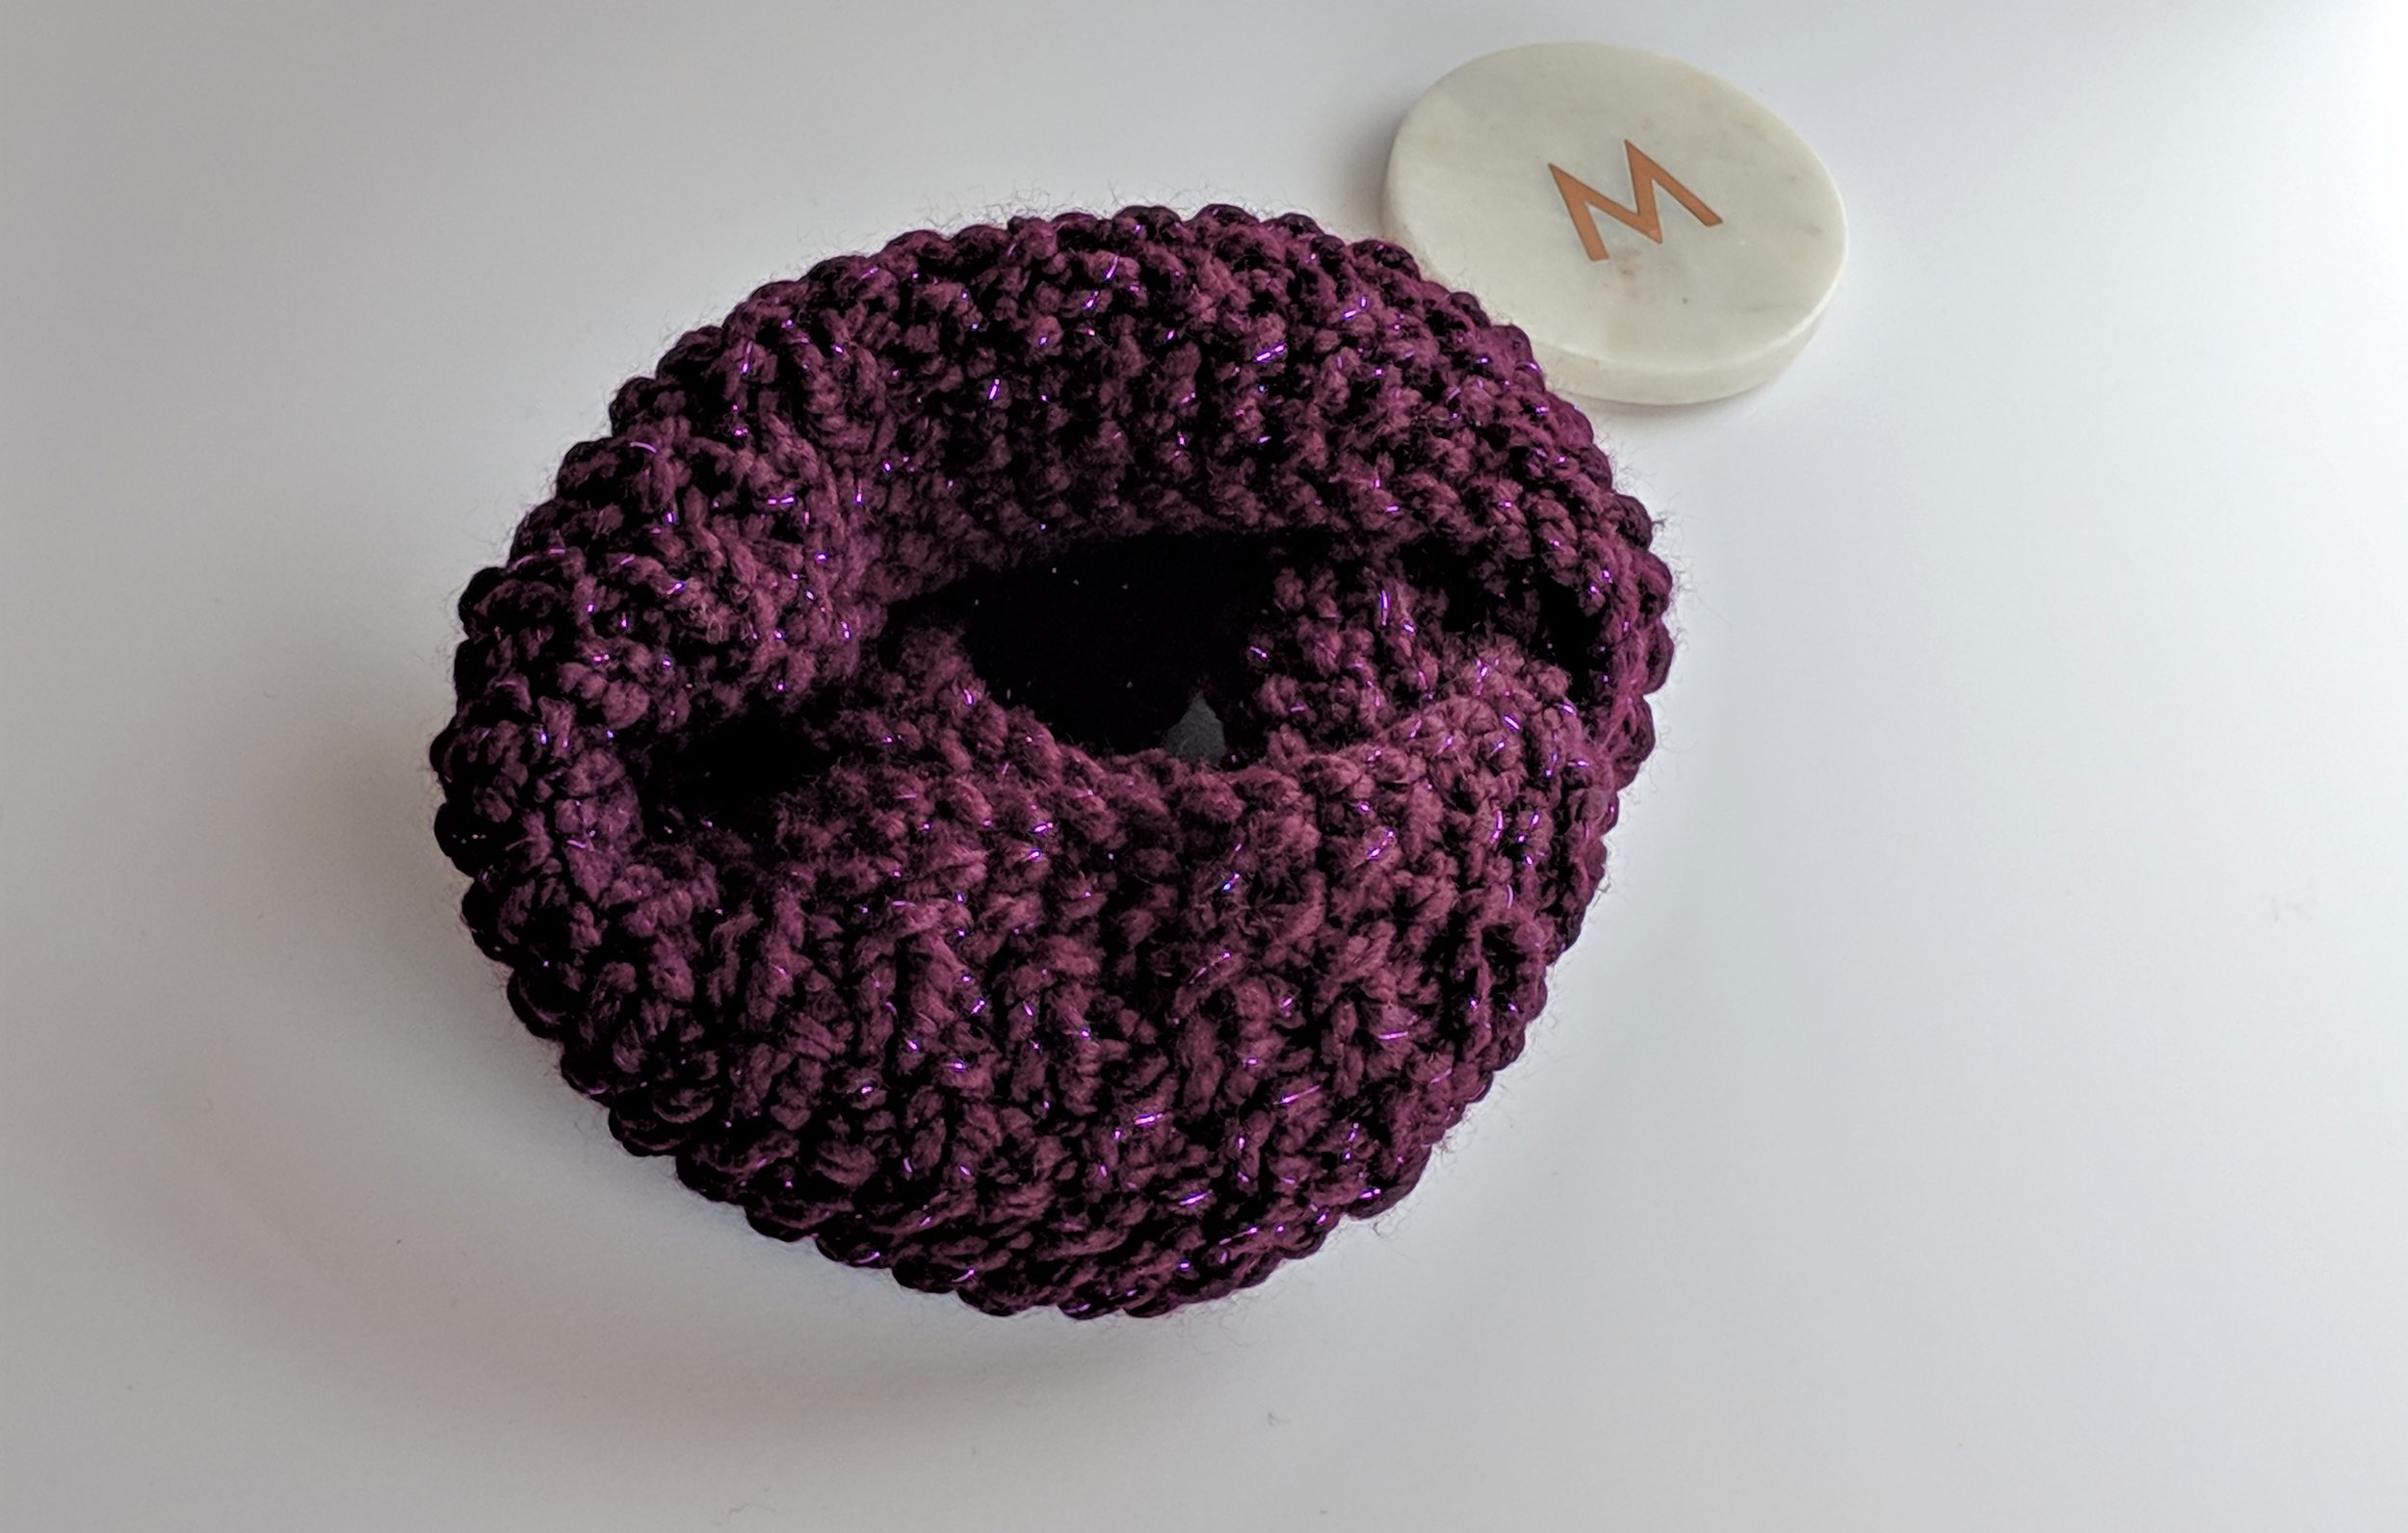 I'm an avid knitter - Knitting is my favorite creative pursuit! I began knitting almost 10 years ago, and its become both a creative outlet for me, as well as a relaxation technique. I also own an Etsy shop where I sell my creations, JTM Knits.